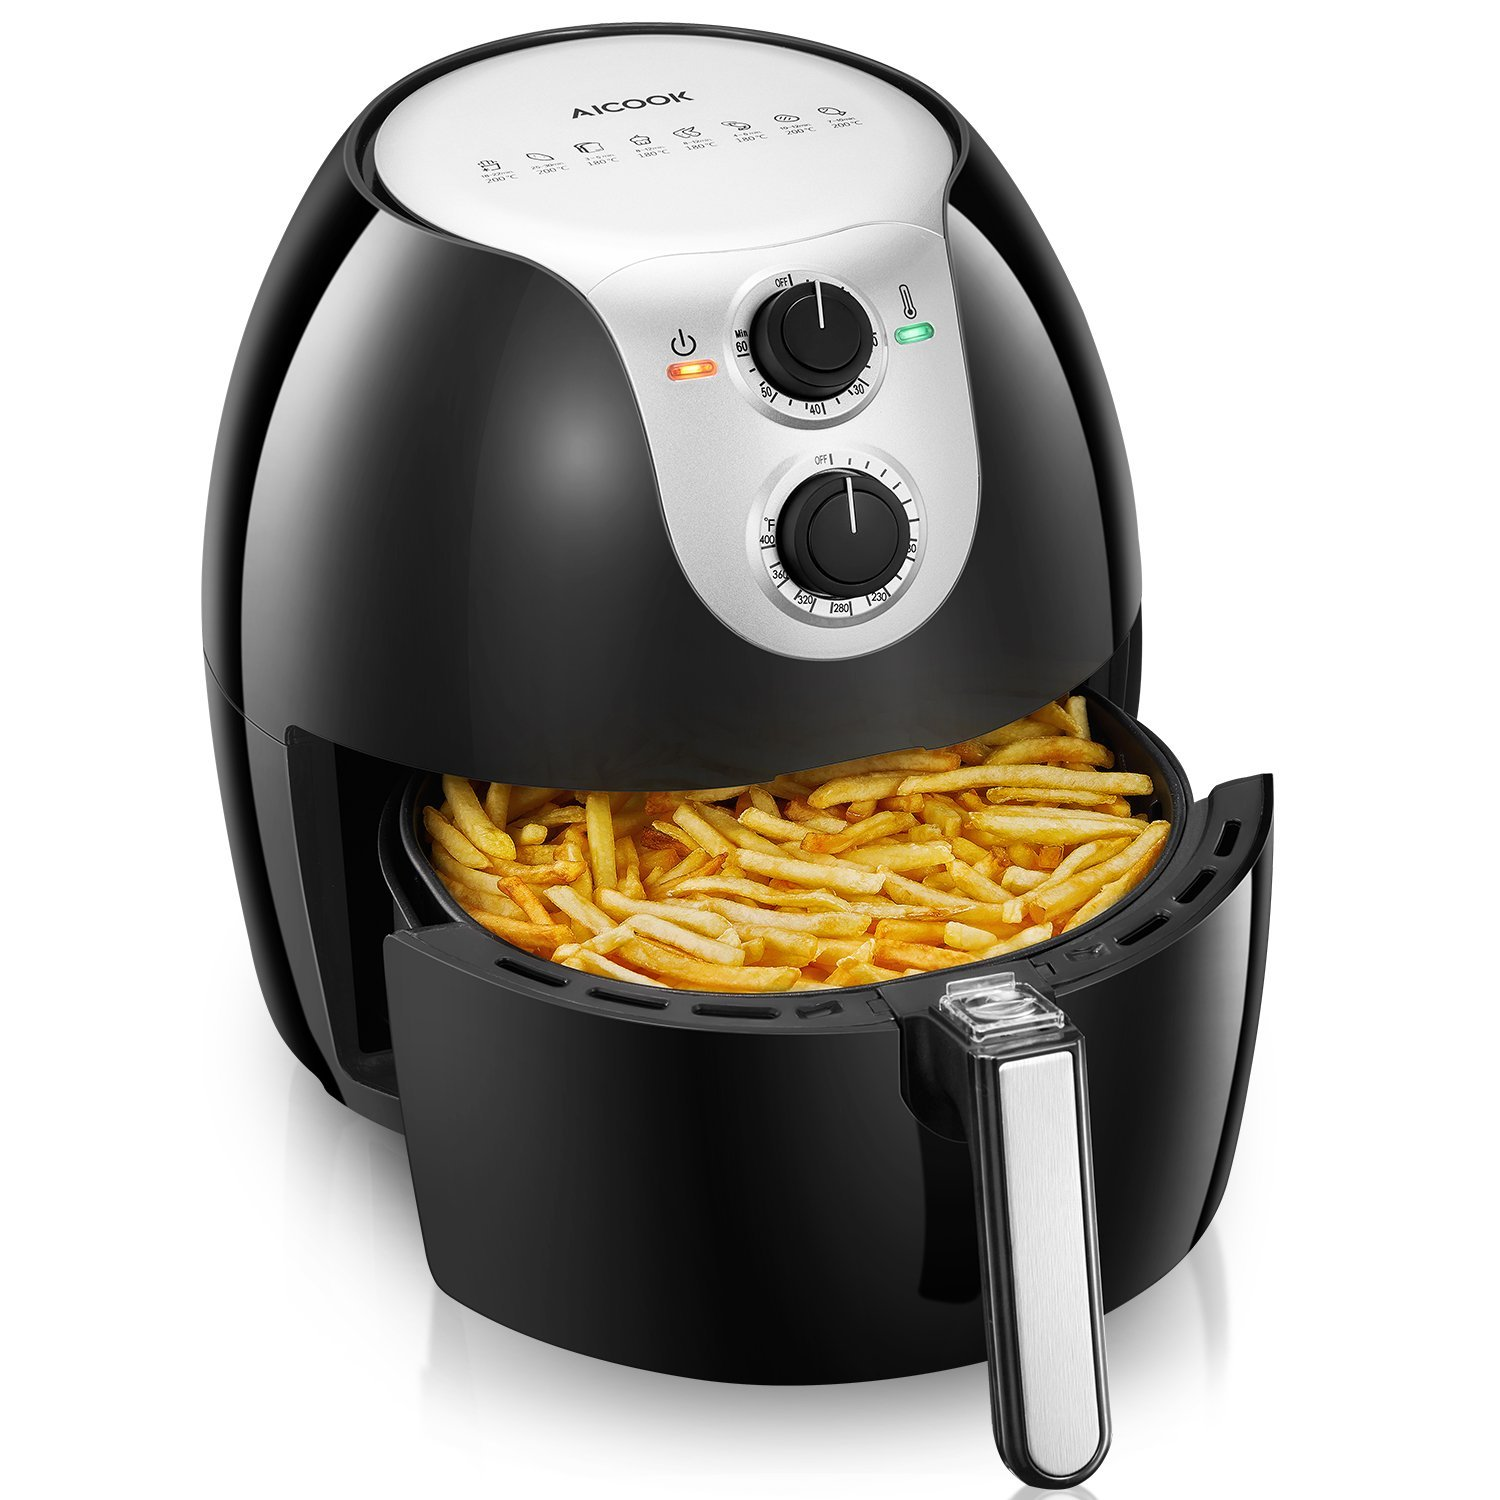 Air Fryer, Aicook 5.8Qt Large Air Fryer, 8-in-1 Programmable Electric Oilless Air Fryer for Good Taste, Crisp, Healthy Foods, with Non Stick Fry Basket, Easy to Clean, Safe Auto Shut off Feature